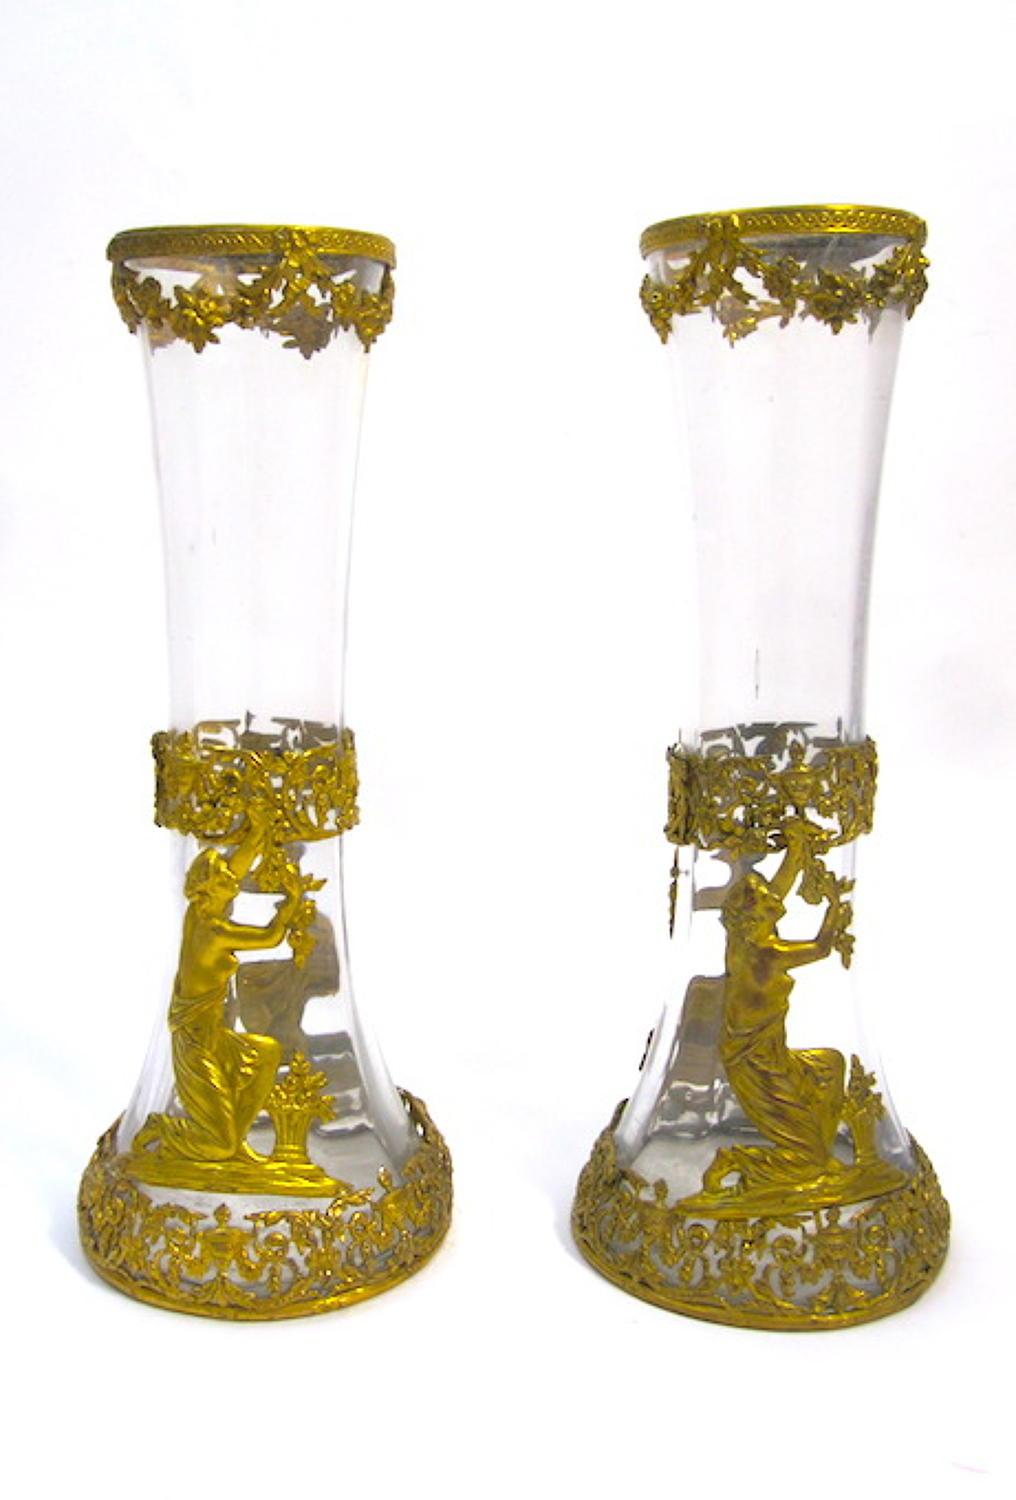 Pair of Antique French Empire Vases